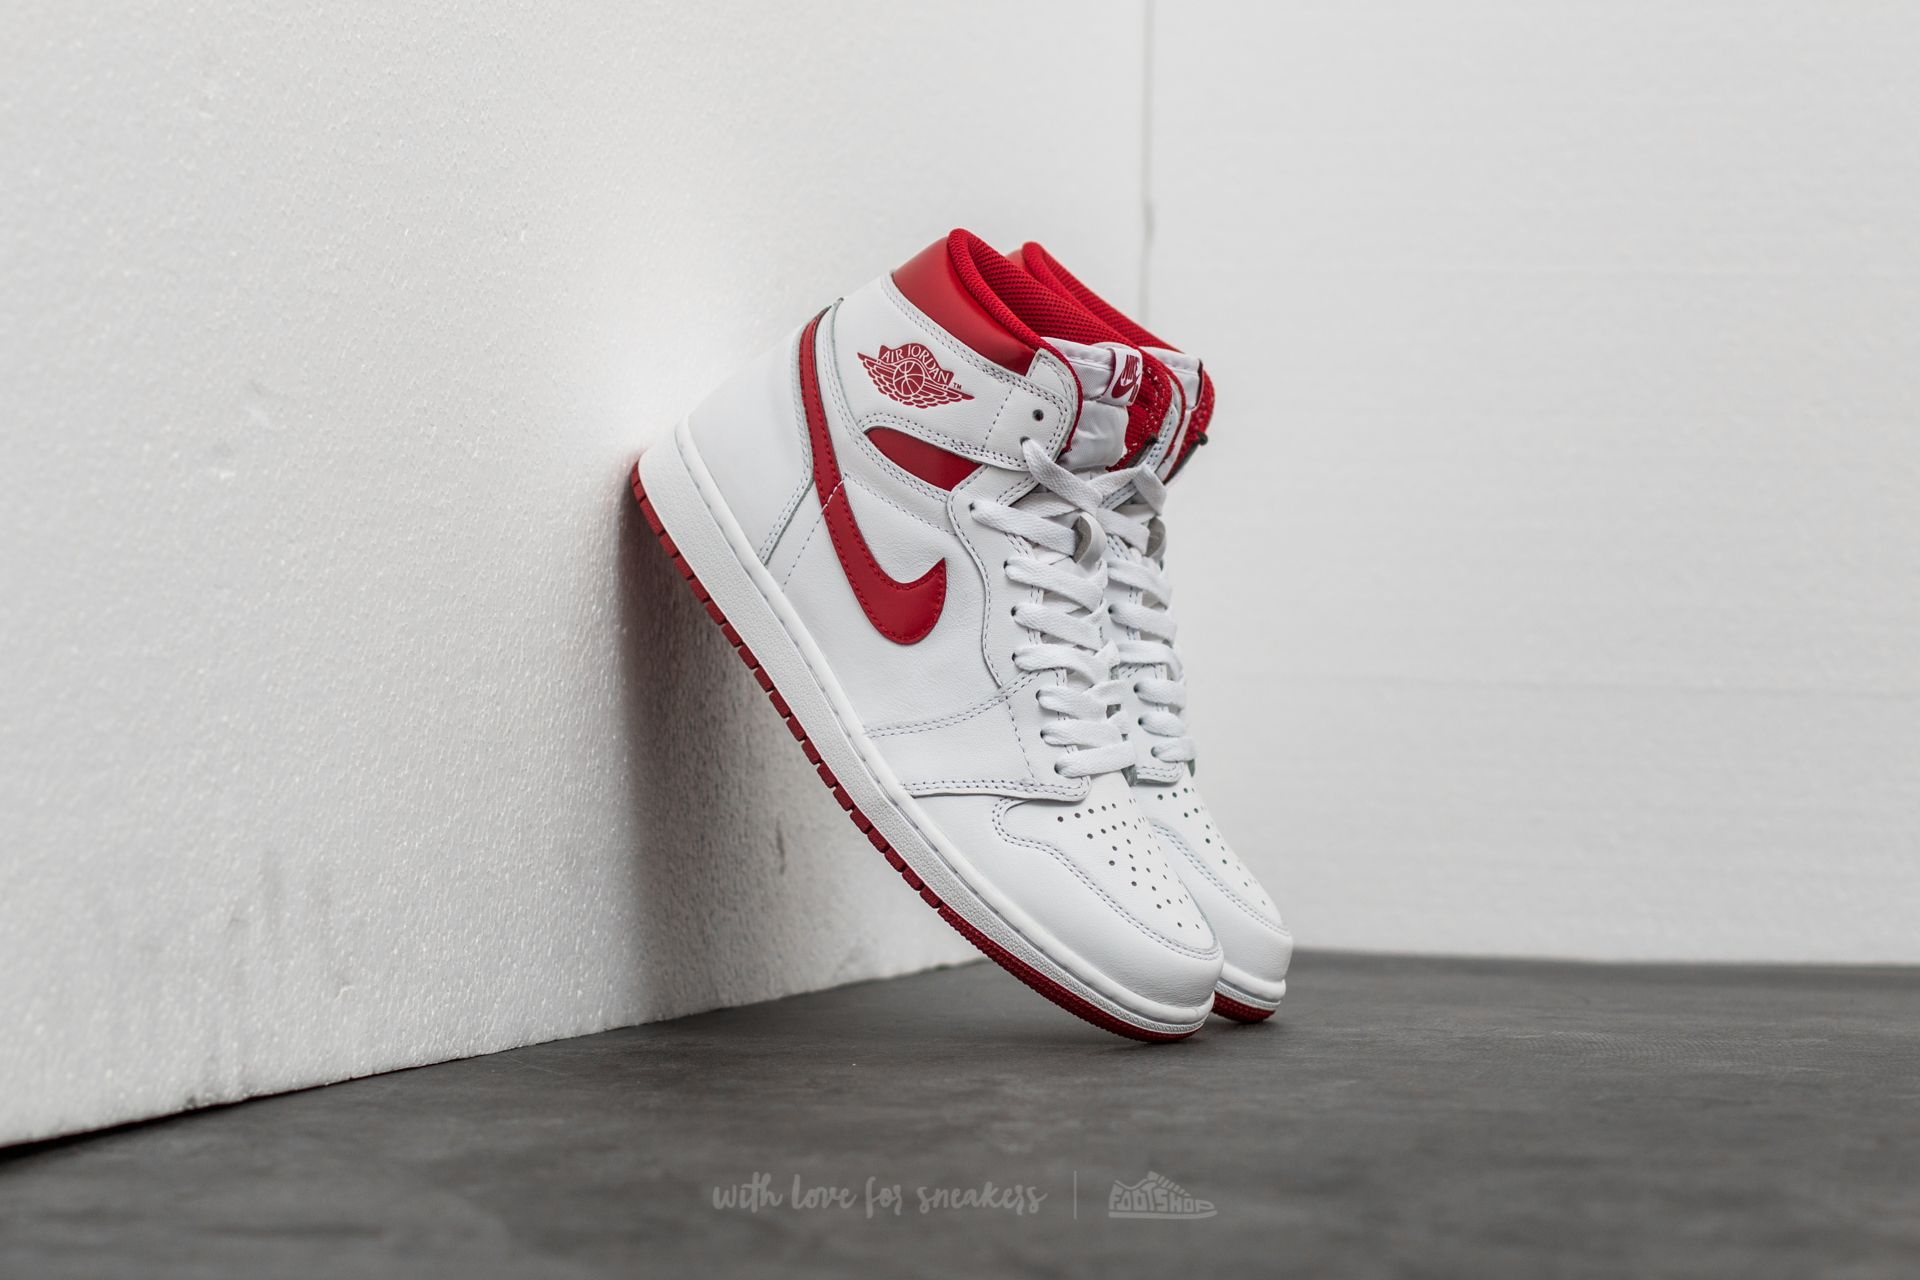 the latest 3d816 45af7 Air Jordan 1 Retro High OG 'Metallic Red' White/ Varsity Red ...